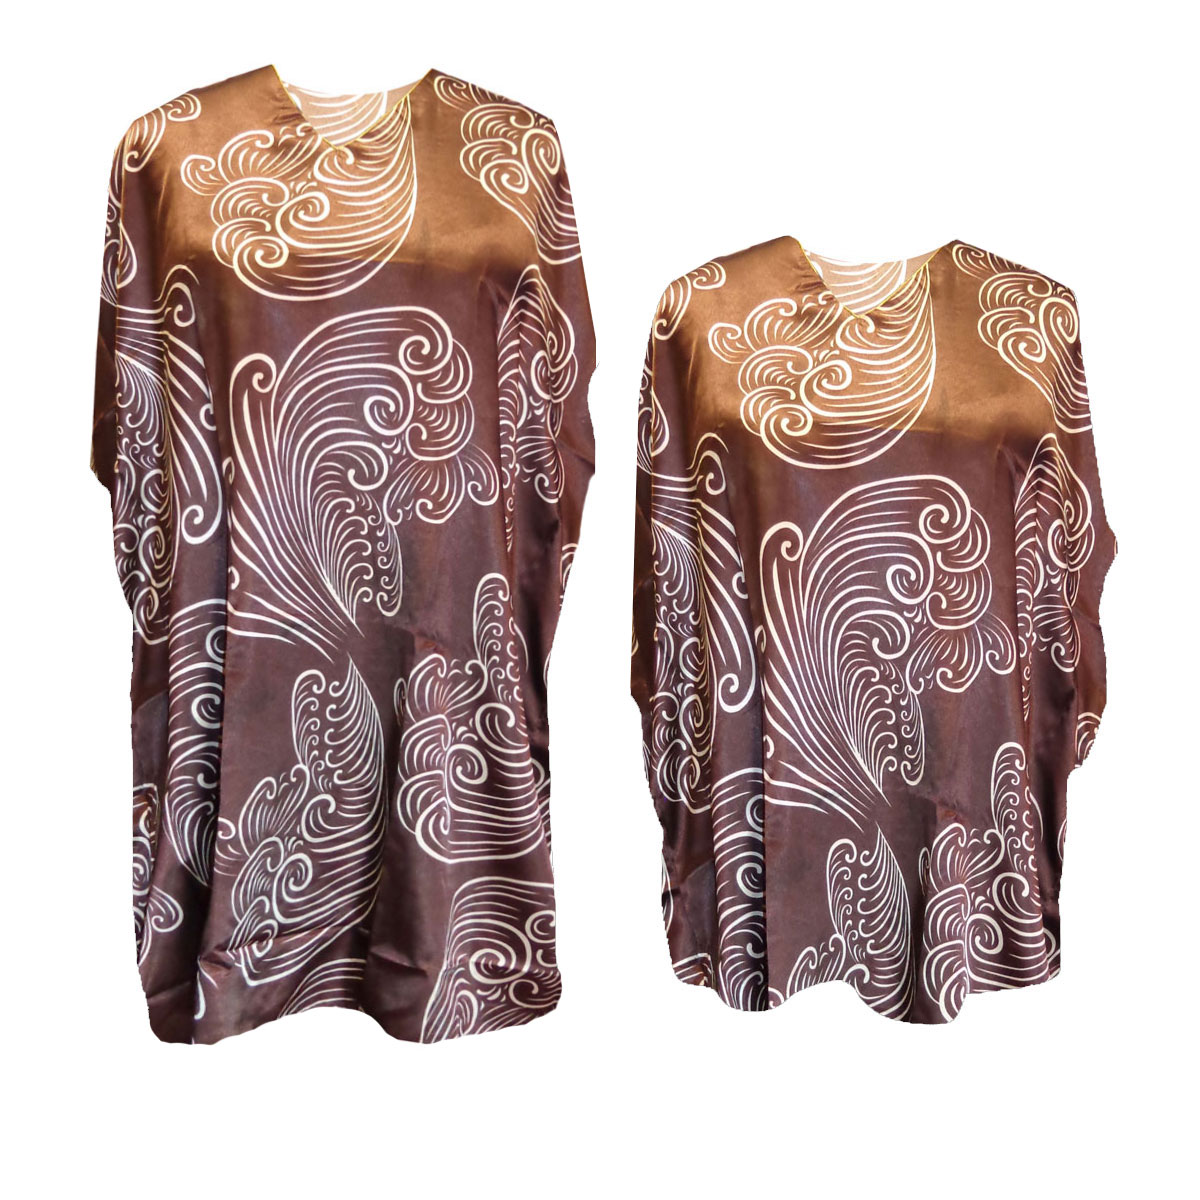 SOLD OUT! Chocolate Brown With Swirls Print Plus Size ...